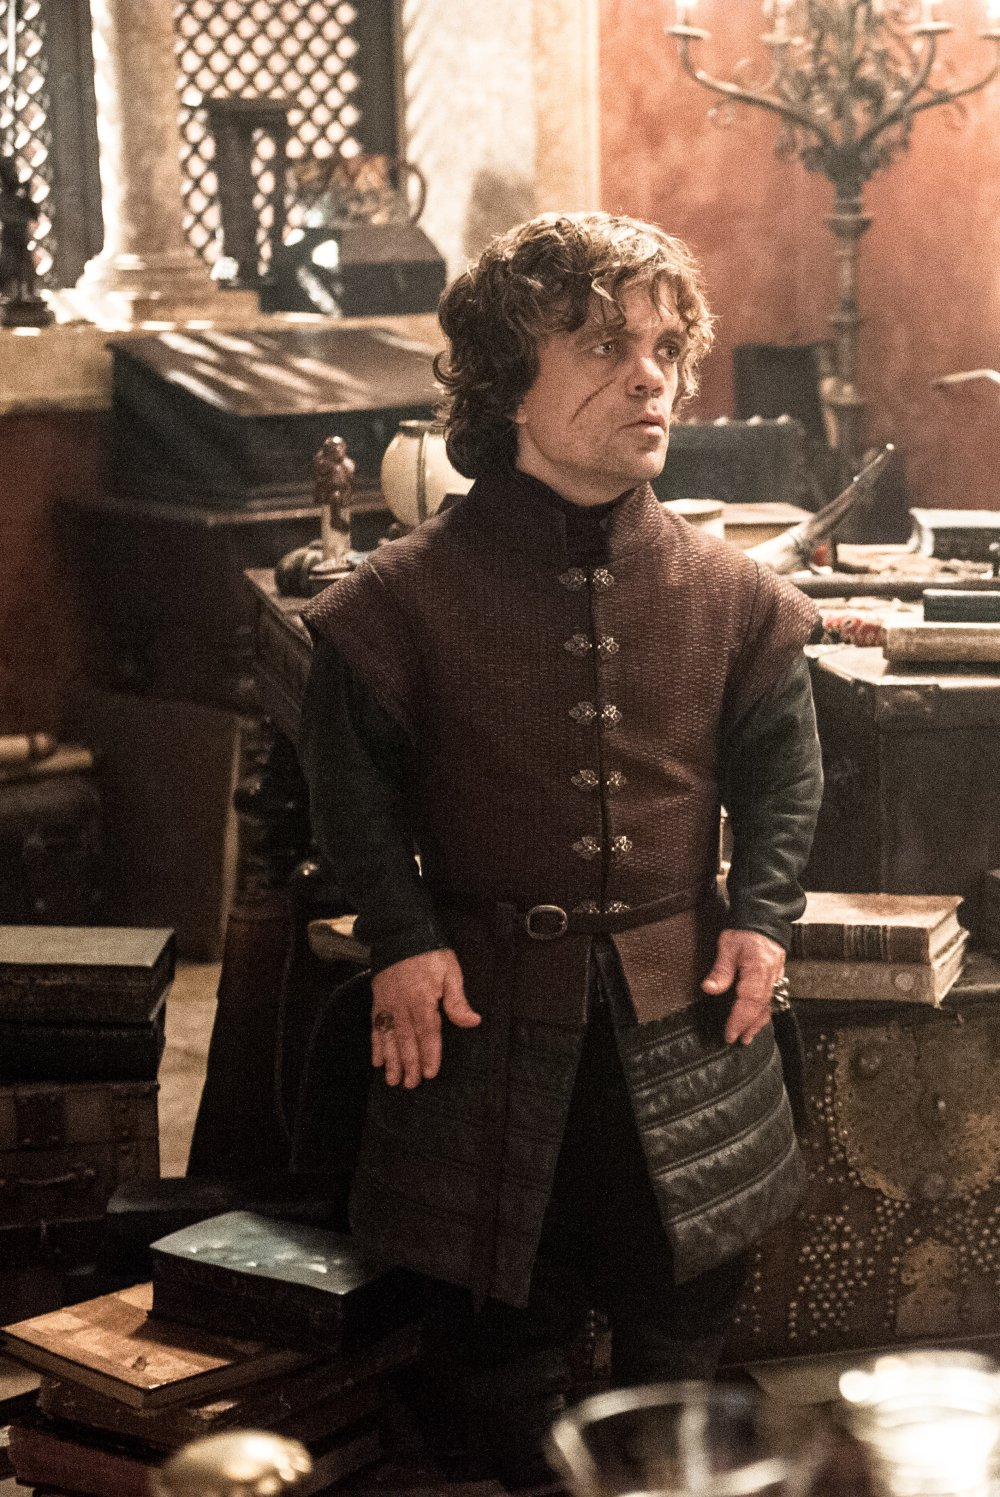 Tyrion-Lannister-tyrion-lannister-35694577-2832-4240